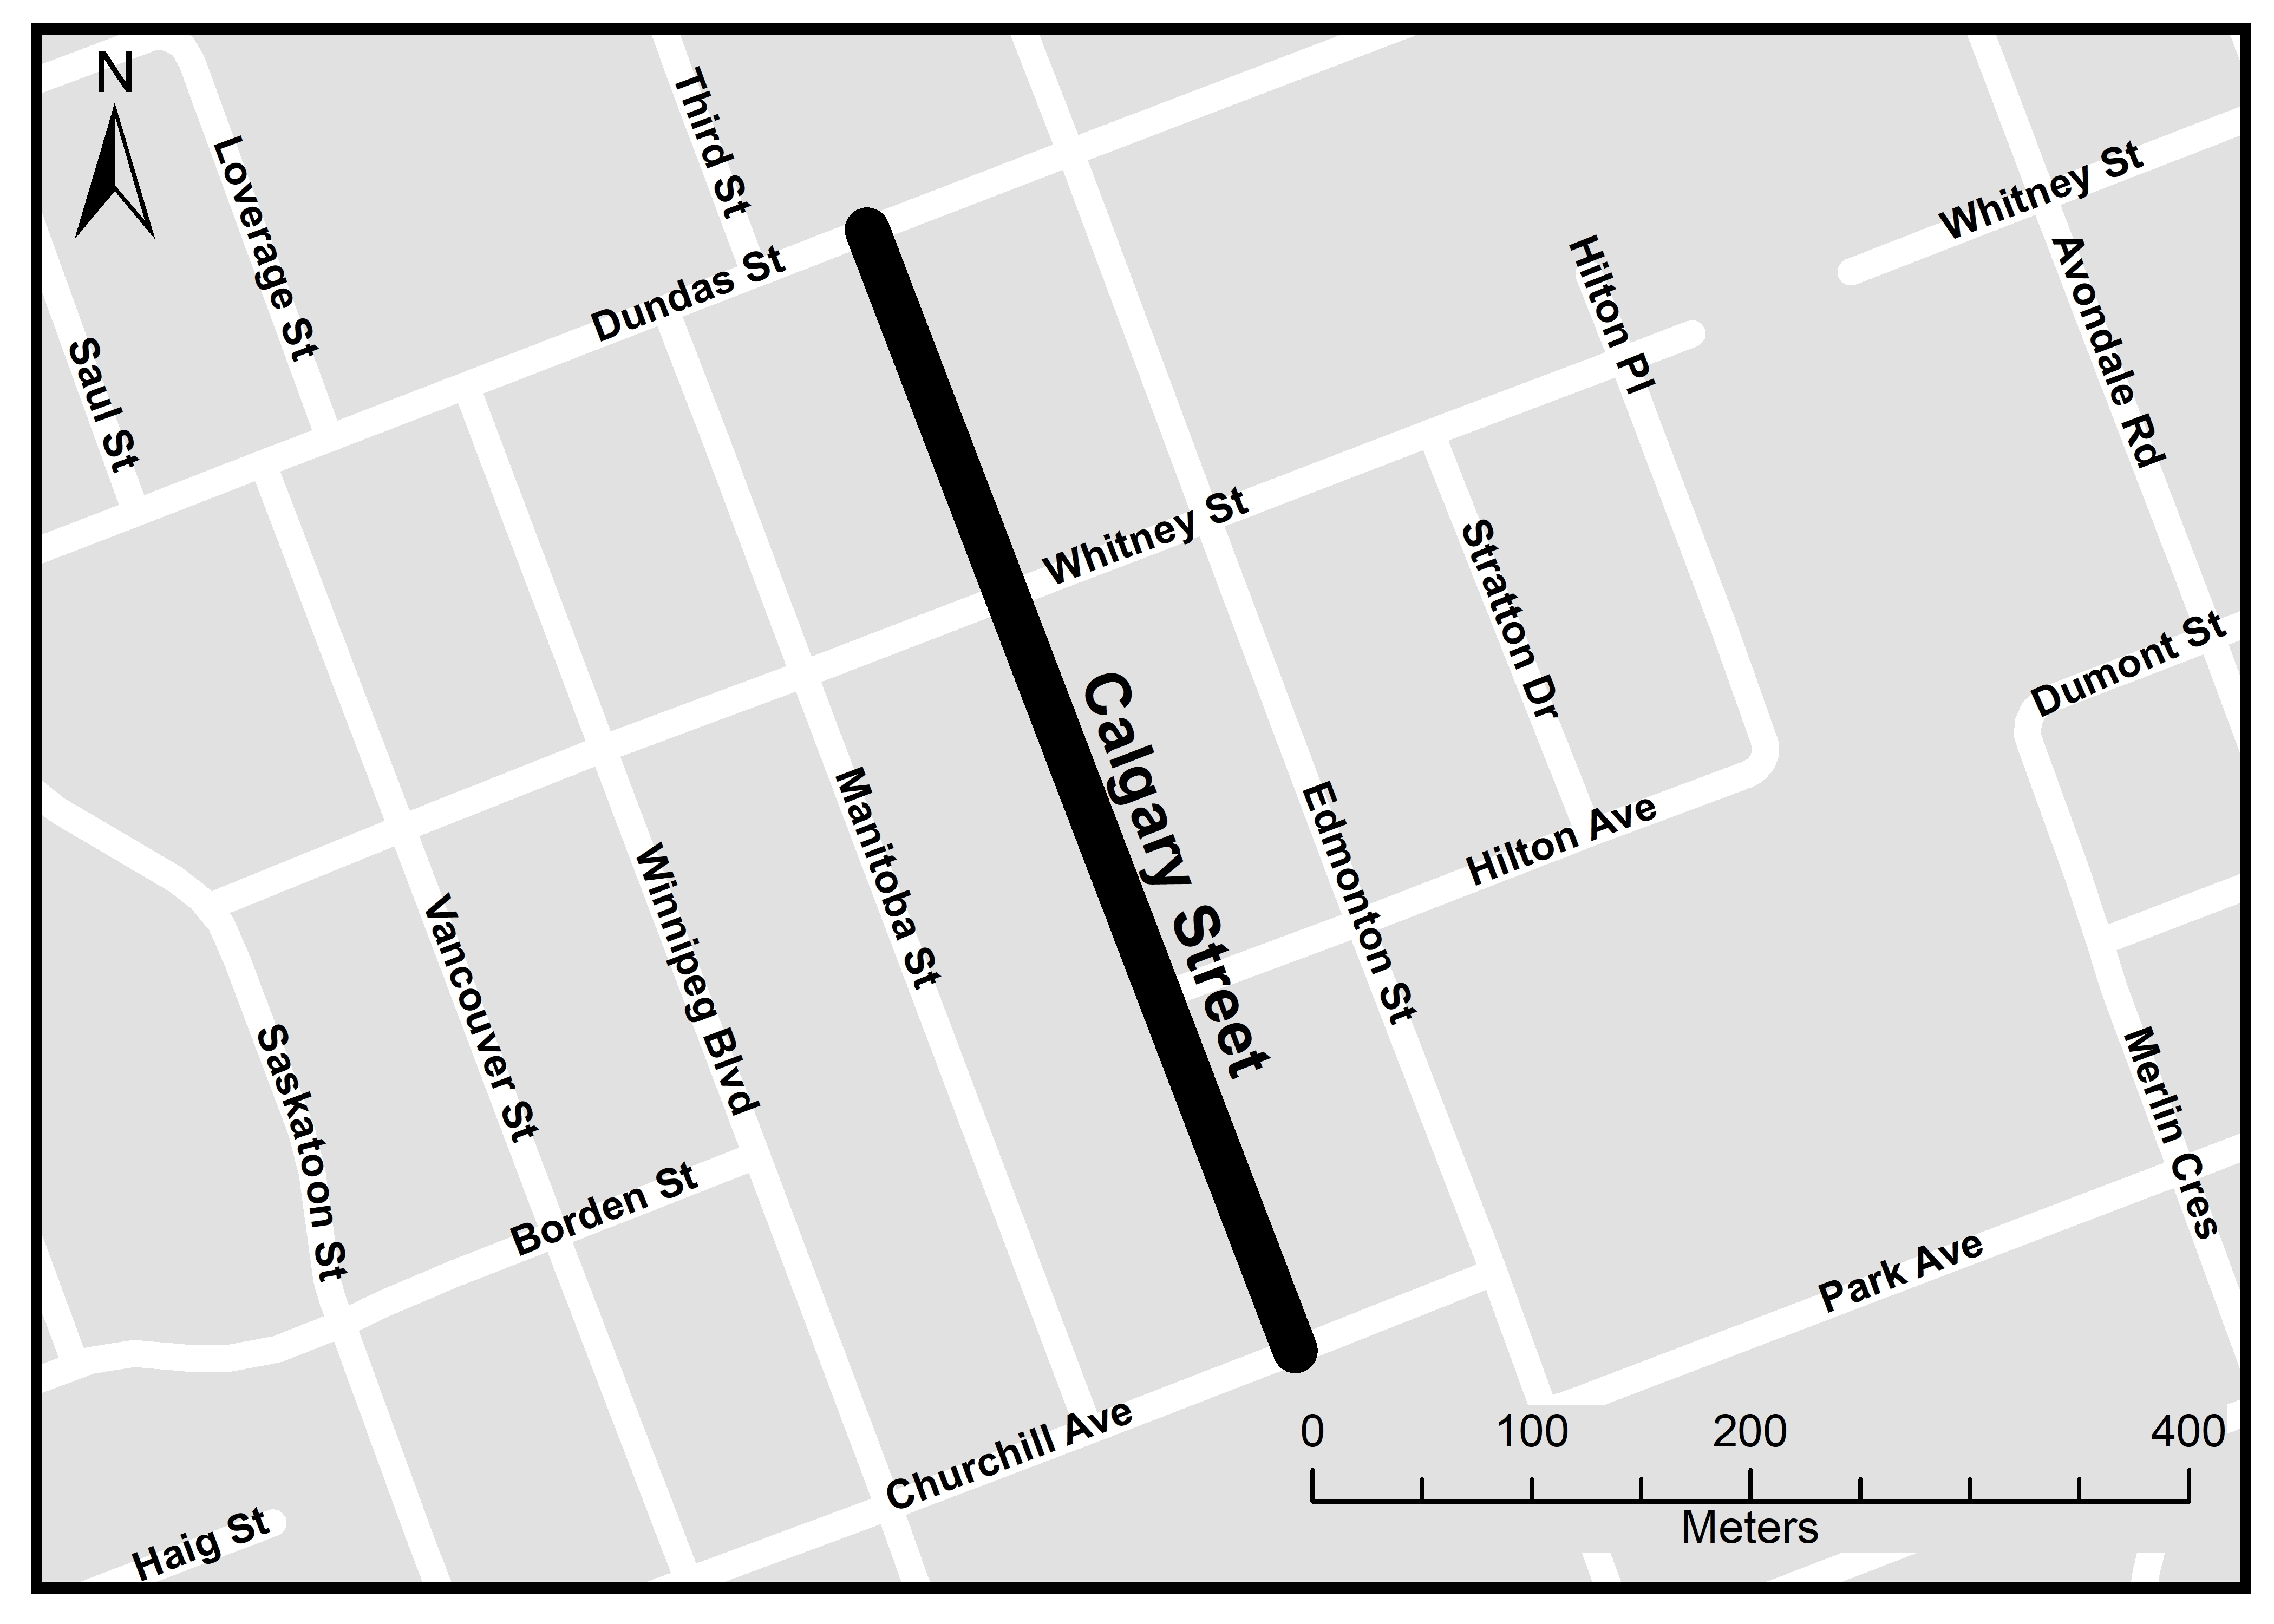 The above map shows the project limits. Crews will reconstruct Calgary Street from Dundas Street to Churchill Avenue. For more information, please contact Crystal McQuinn at cmcquinn@london.ca or by calling 519-661-2489 x 4472